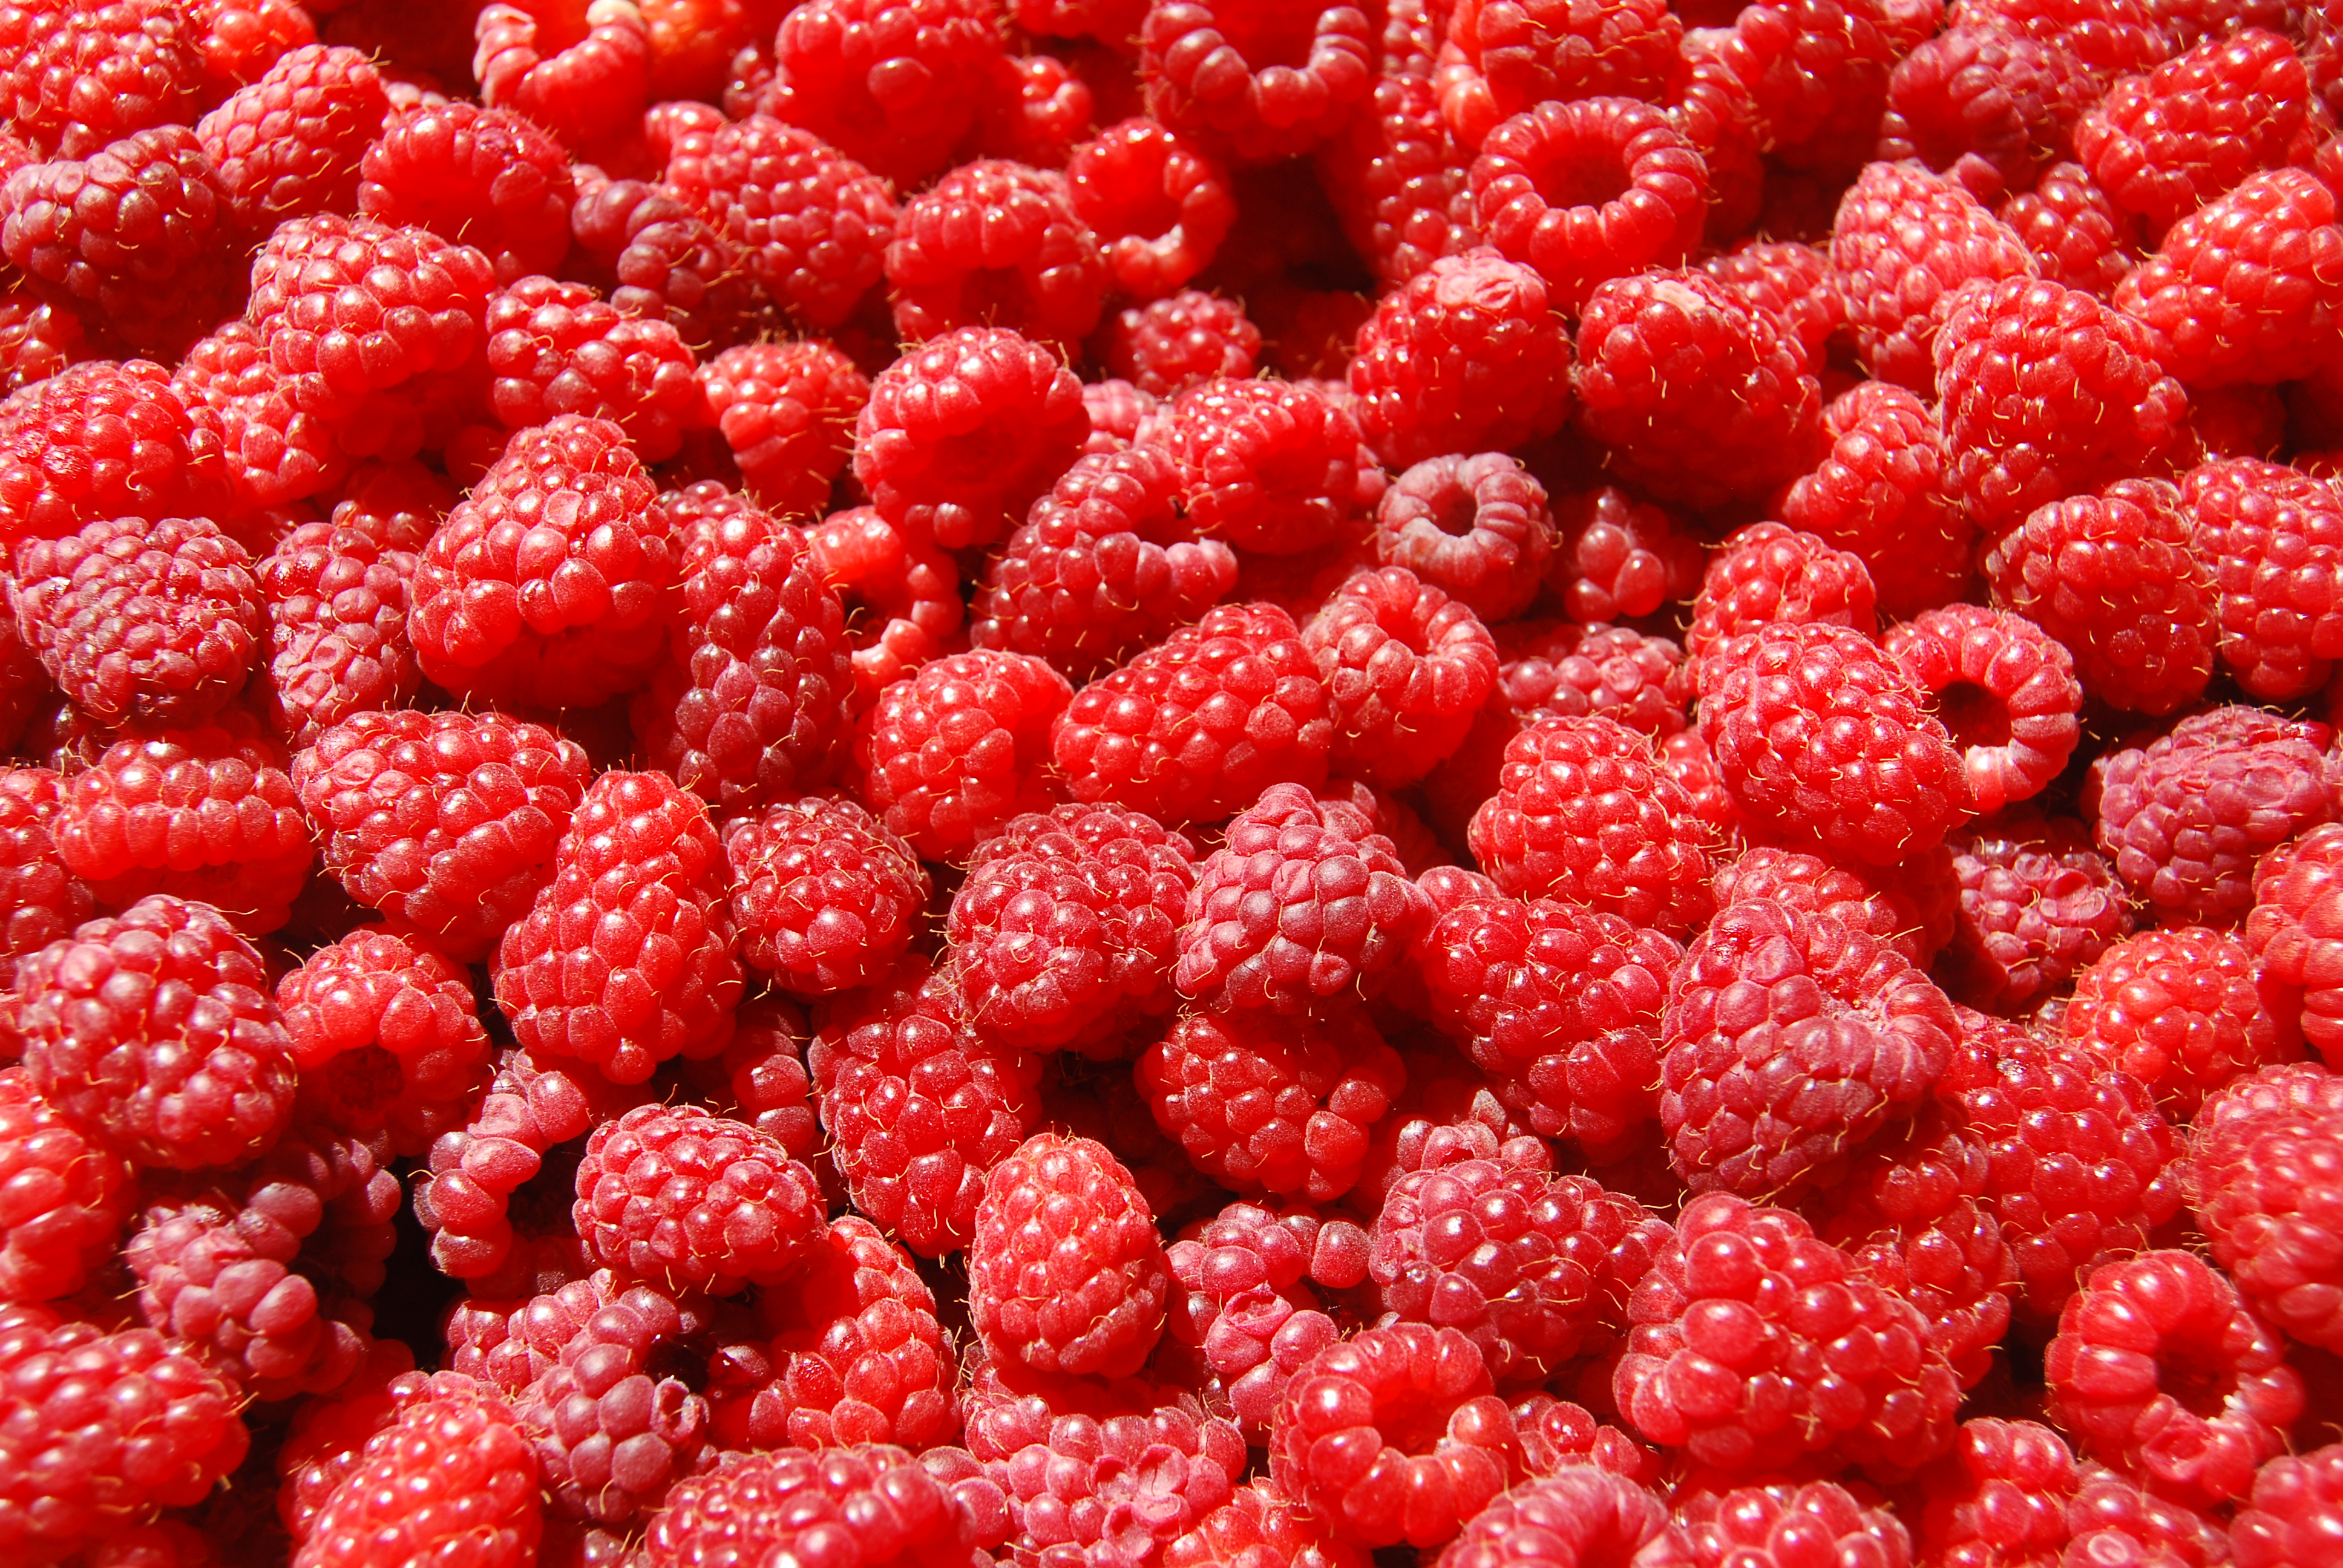 A close-up of red raspberries